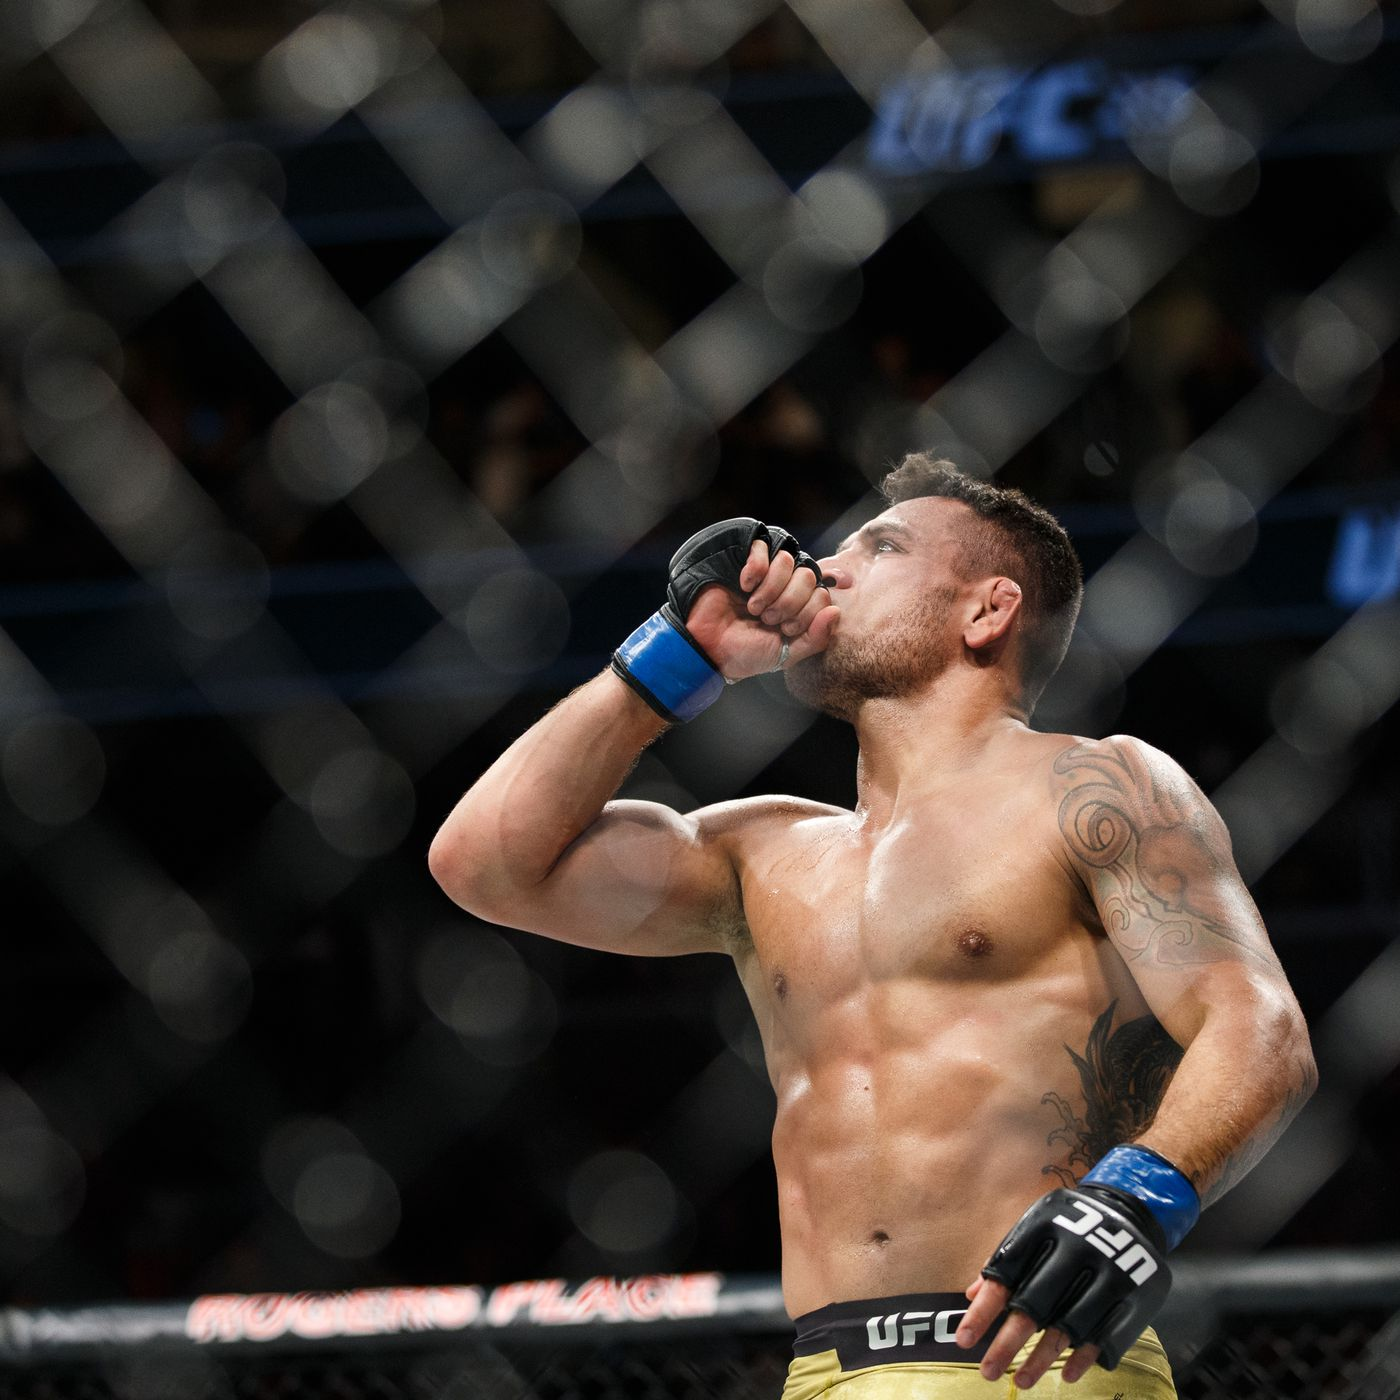 ufc 152 fight card results betting odds tickets